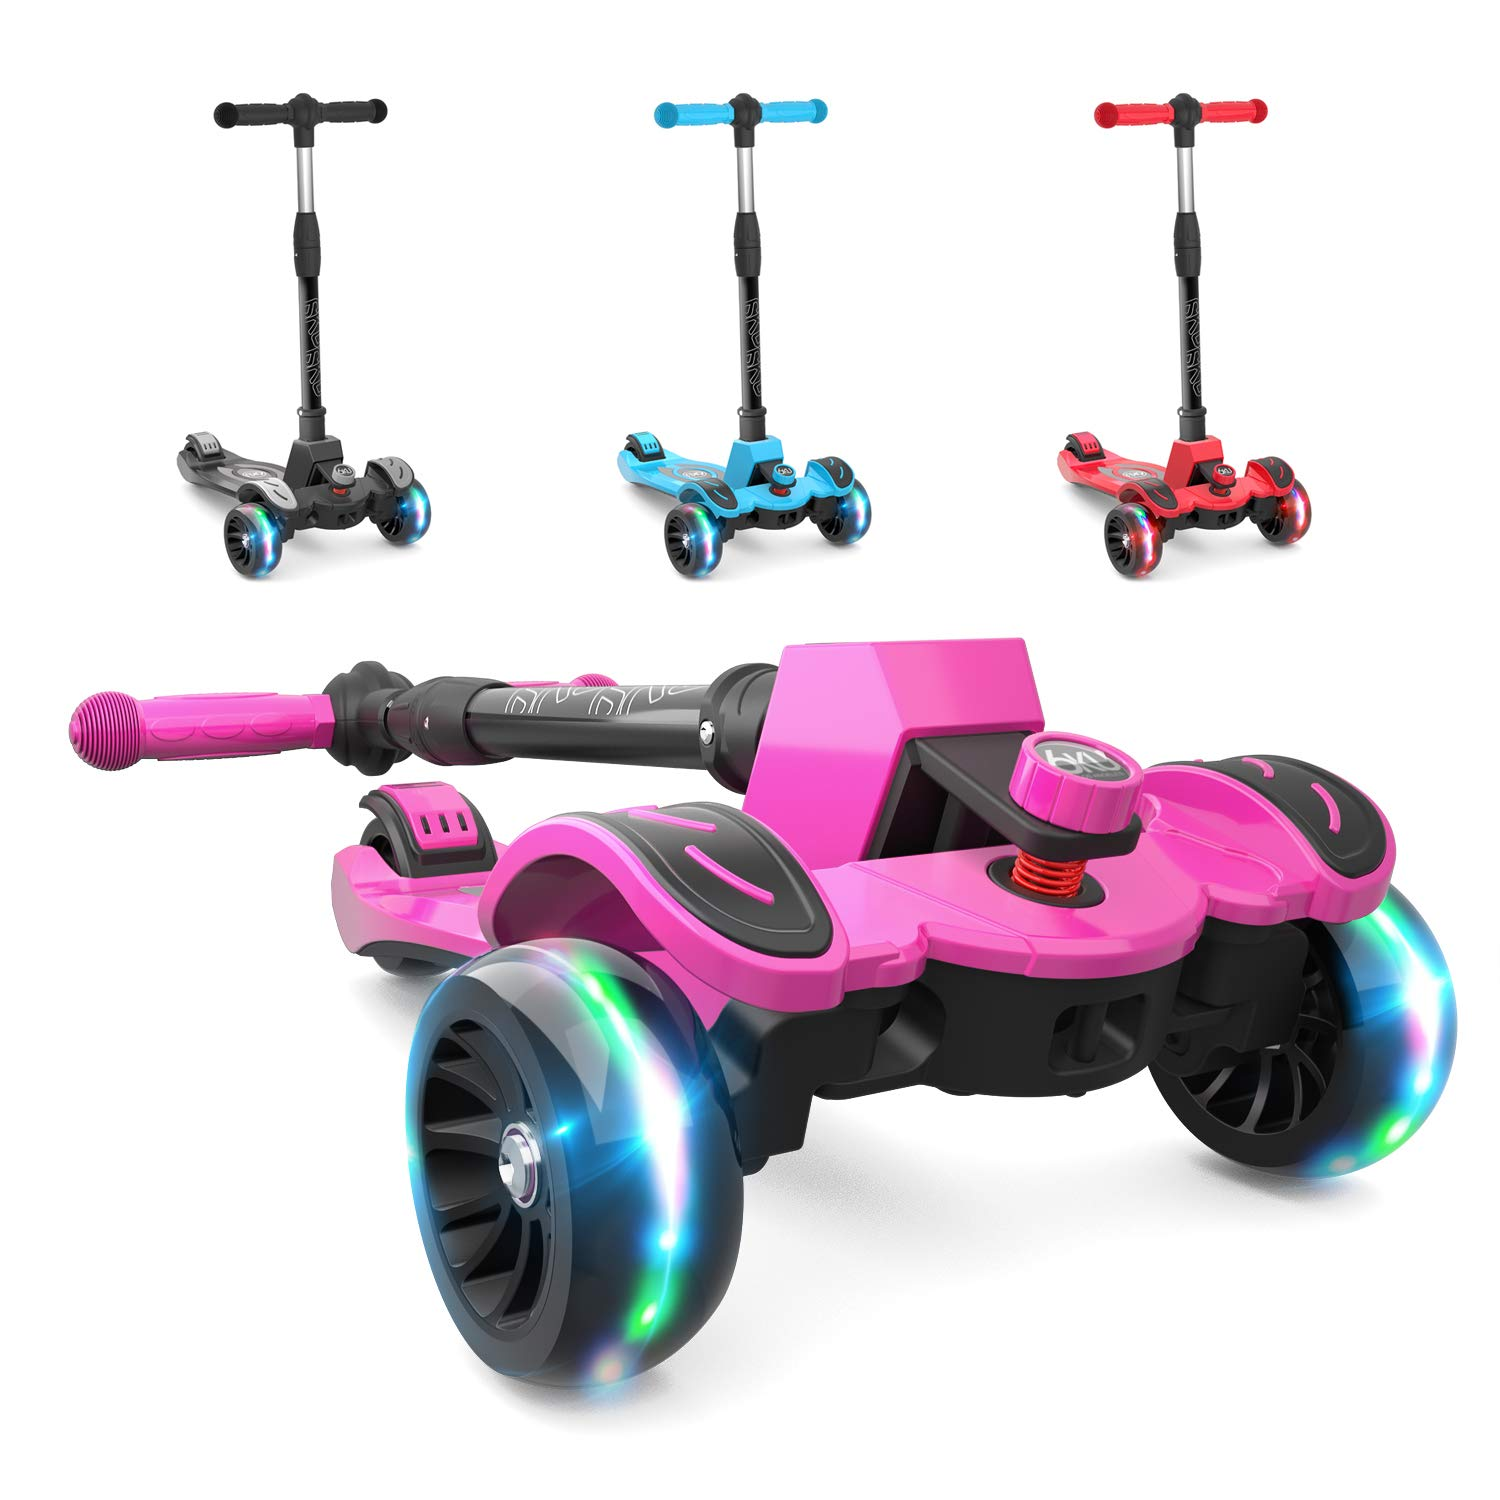 6KU Kids Kick Scooter with Adjustable Height, Lean to Steer, Flashing Wheels for Children 3-8 Years Old Pink